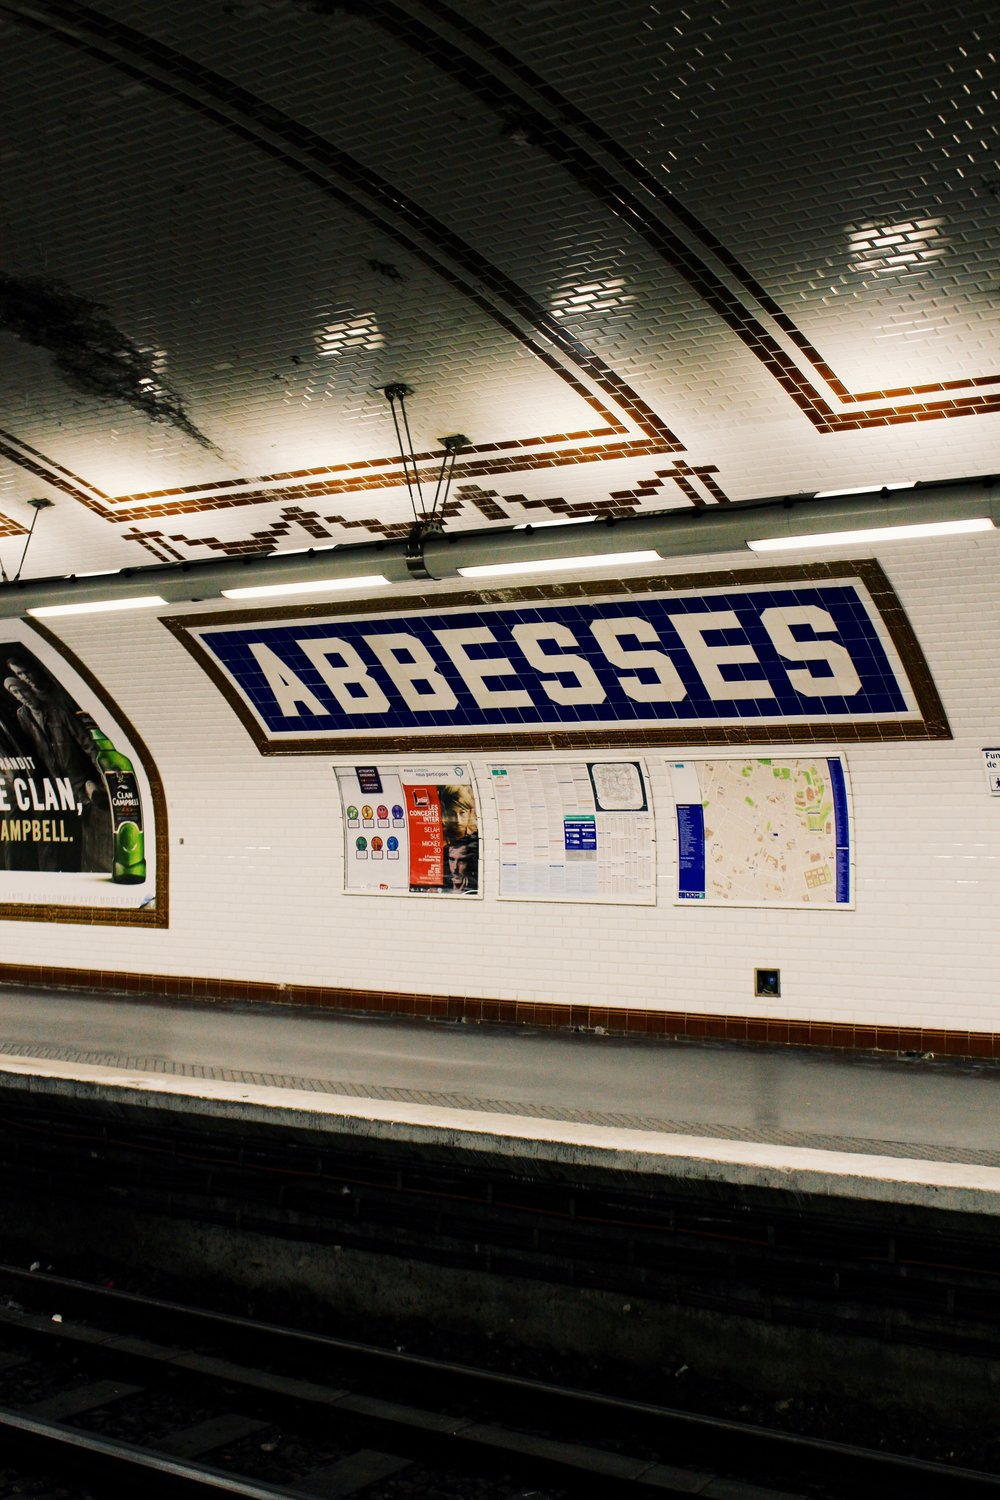 abbesses subway copy.jpg